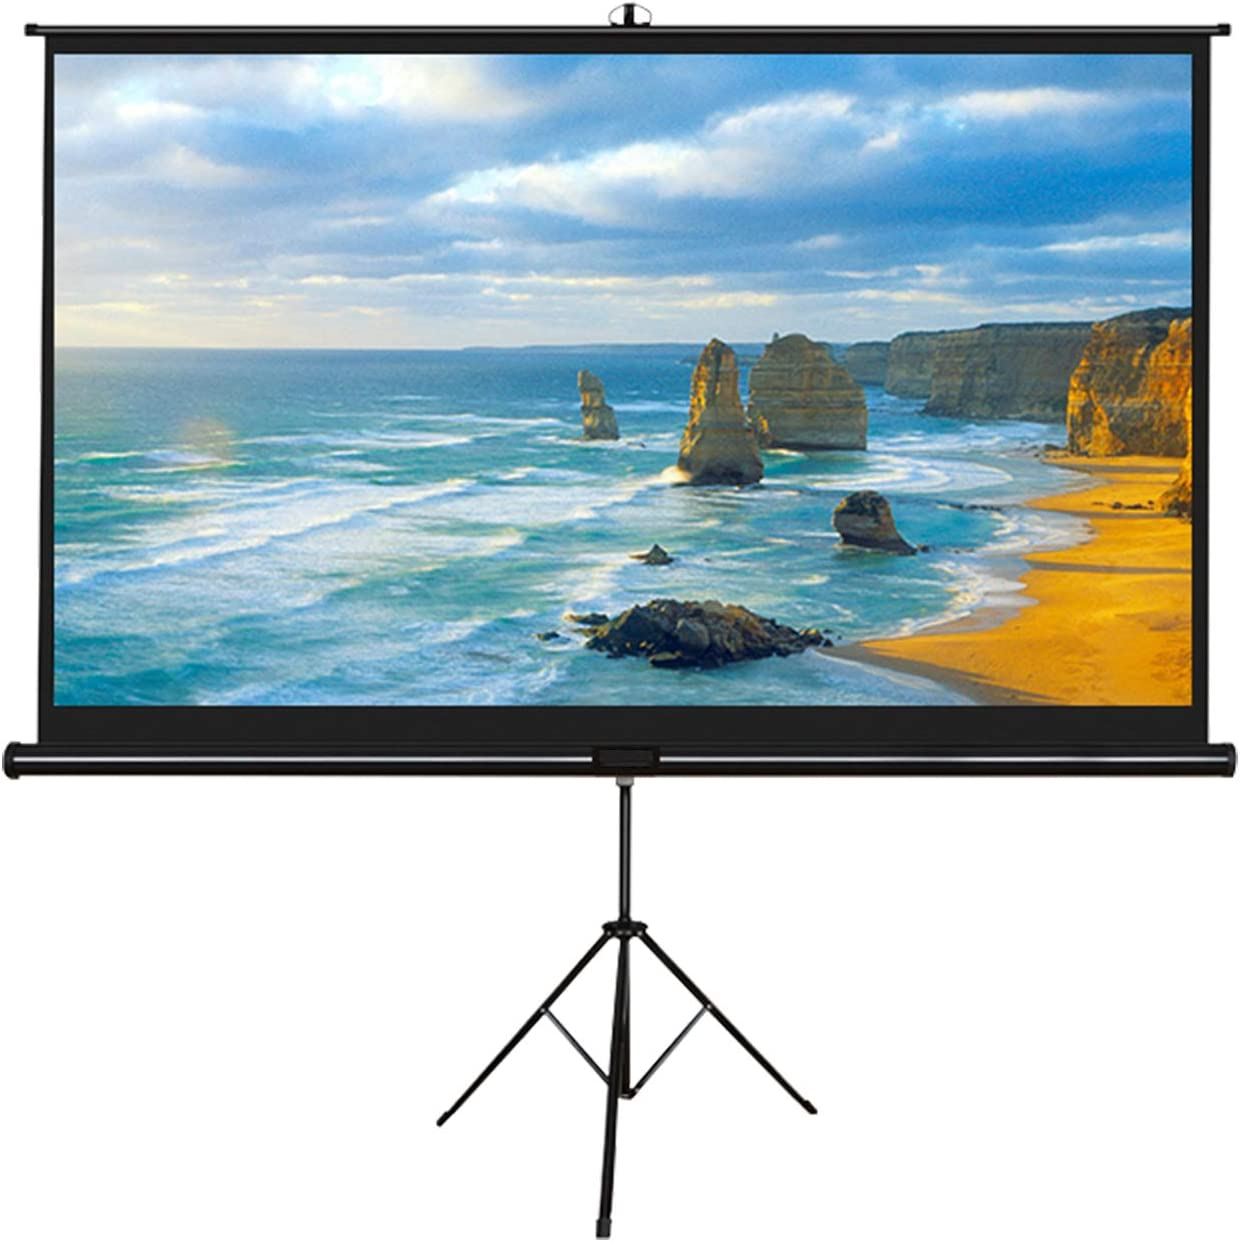 XINKO Portable Indoor Outdoor Projector Screen 100 Inch Diagonal Projection HD 16:9 Projection Pull Up Foldable Stand Tripod